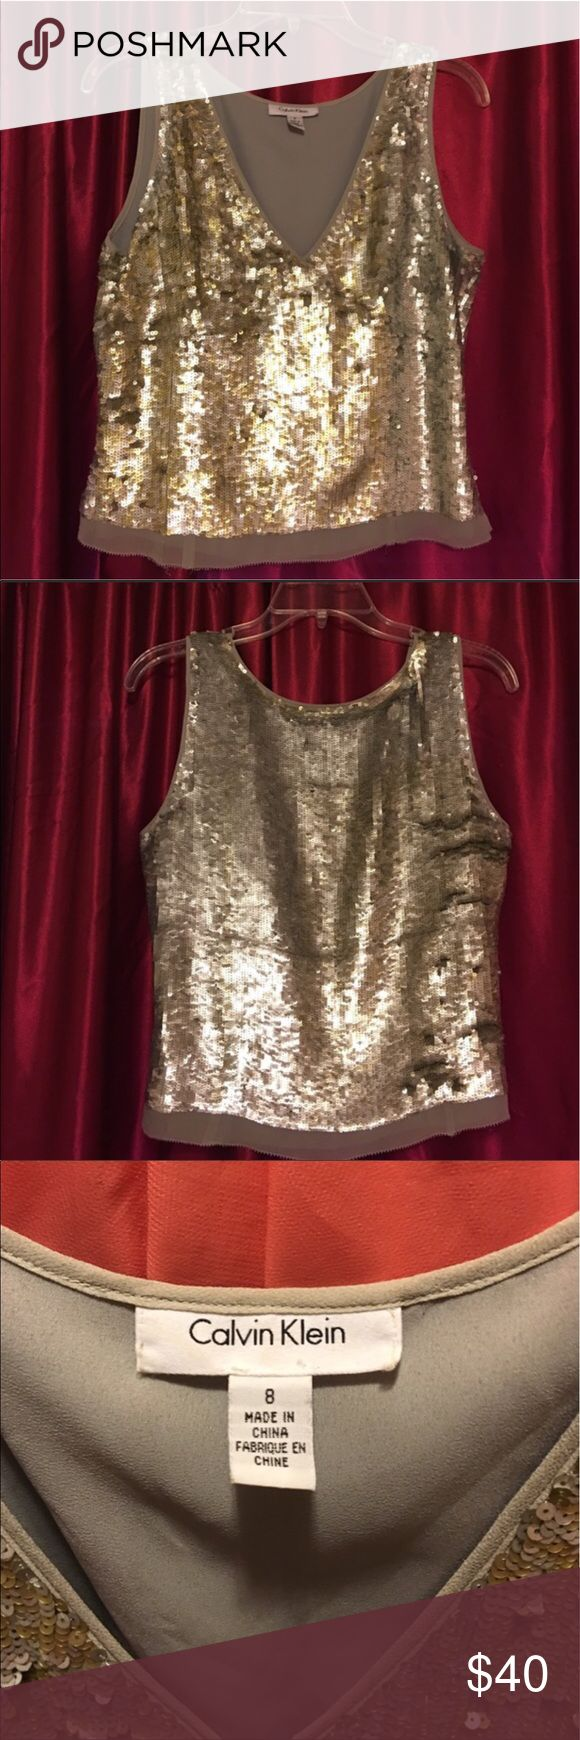 """🎉HP 11/05🎉 NWOT Calvin Klein sequin top Calvin Klein sequin top. Never worn. 20"""" from shoulder to hem. A dazzling array of silver and gold sequins. 100% silk outer shell that hosts sequins and polyester inner shell. Size 8. There are a couple spots where the sequin threading has come loose letting several sequins fall off. Will post pictures later. Original price $350! Bought for NYE but never wore it. Calvin Klein Collection Tops Blouses"""